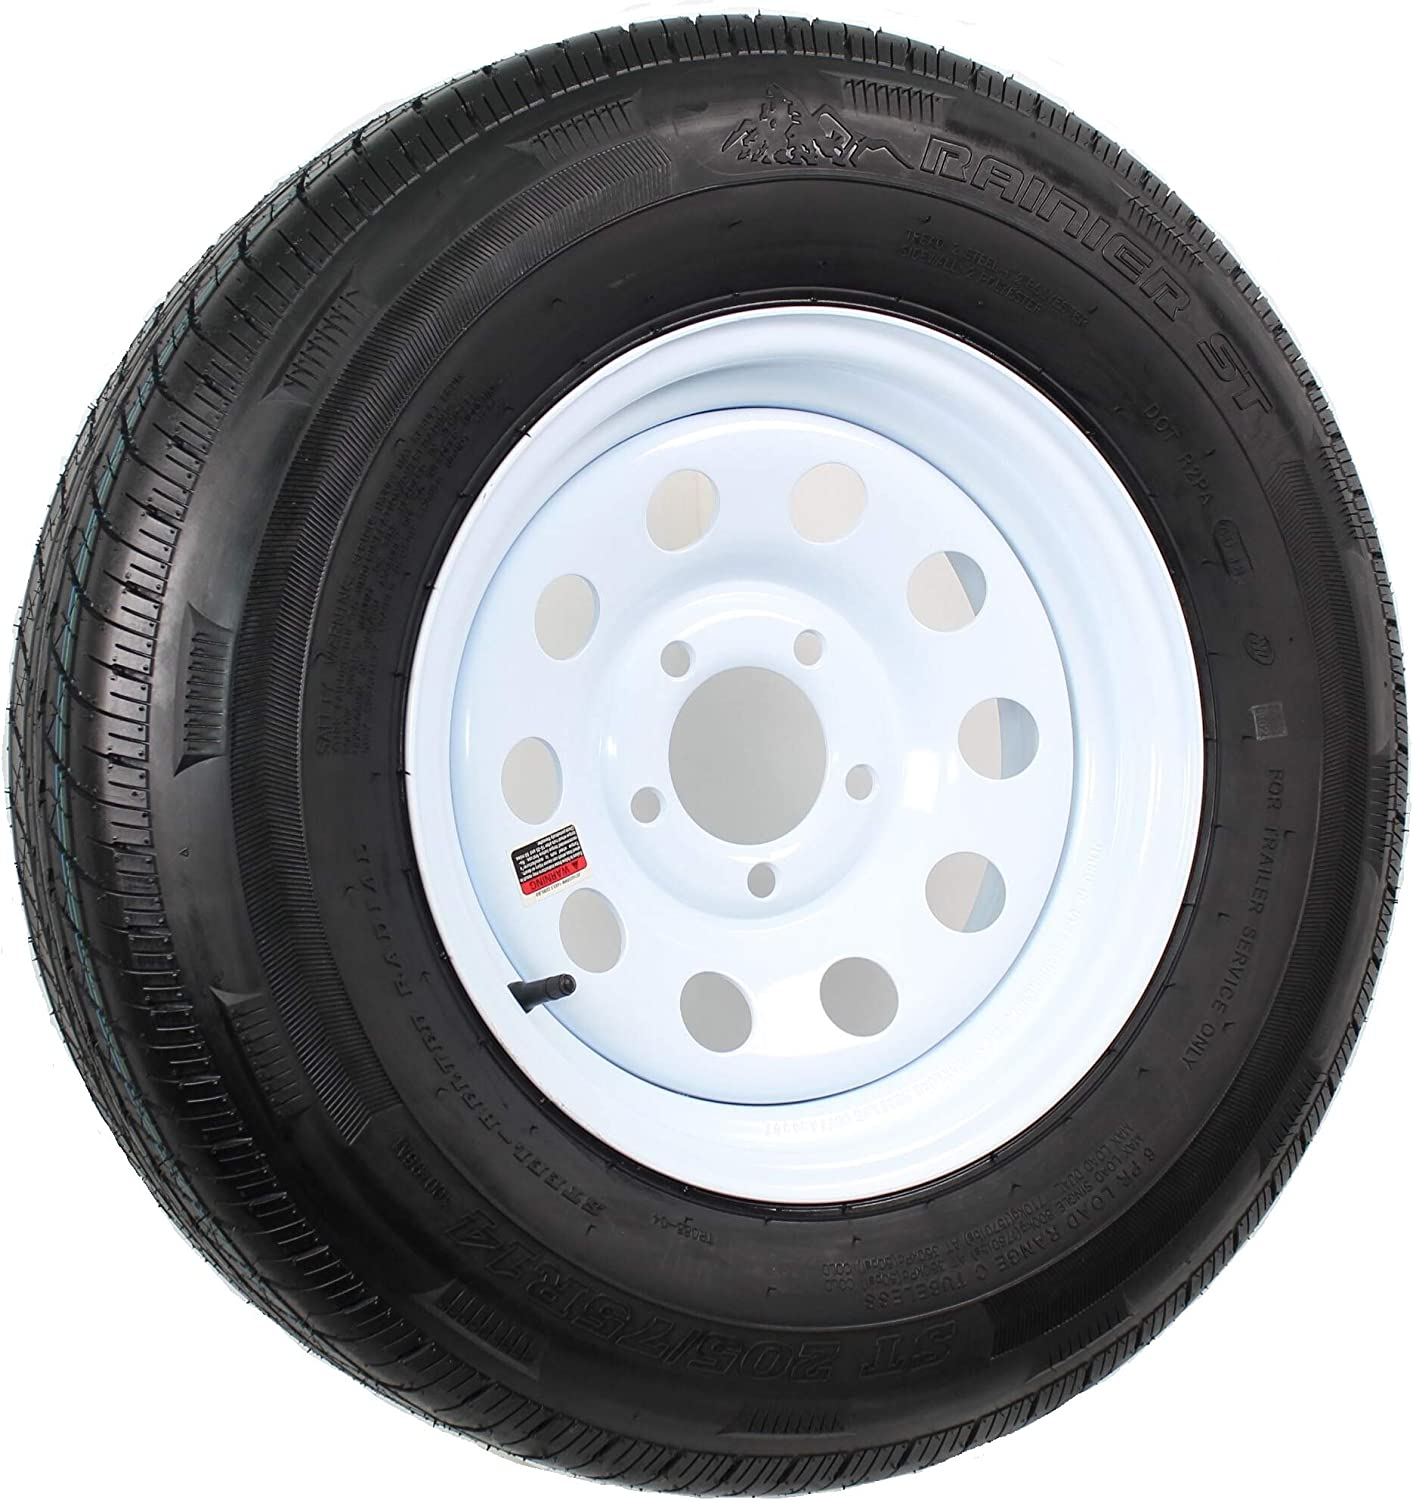 14 inch White Painted Modular Trailer 2021 and Wheel 75R14 Detroit Mall Radial 205